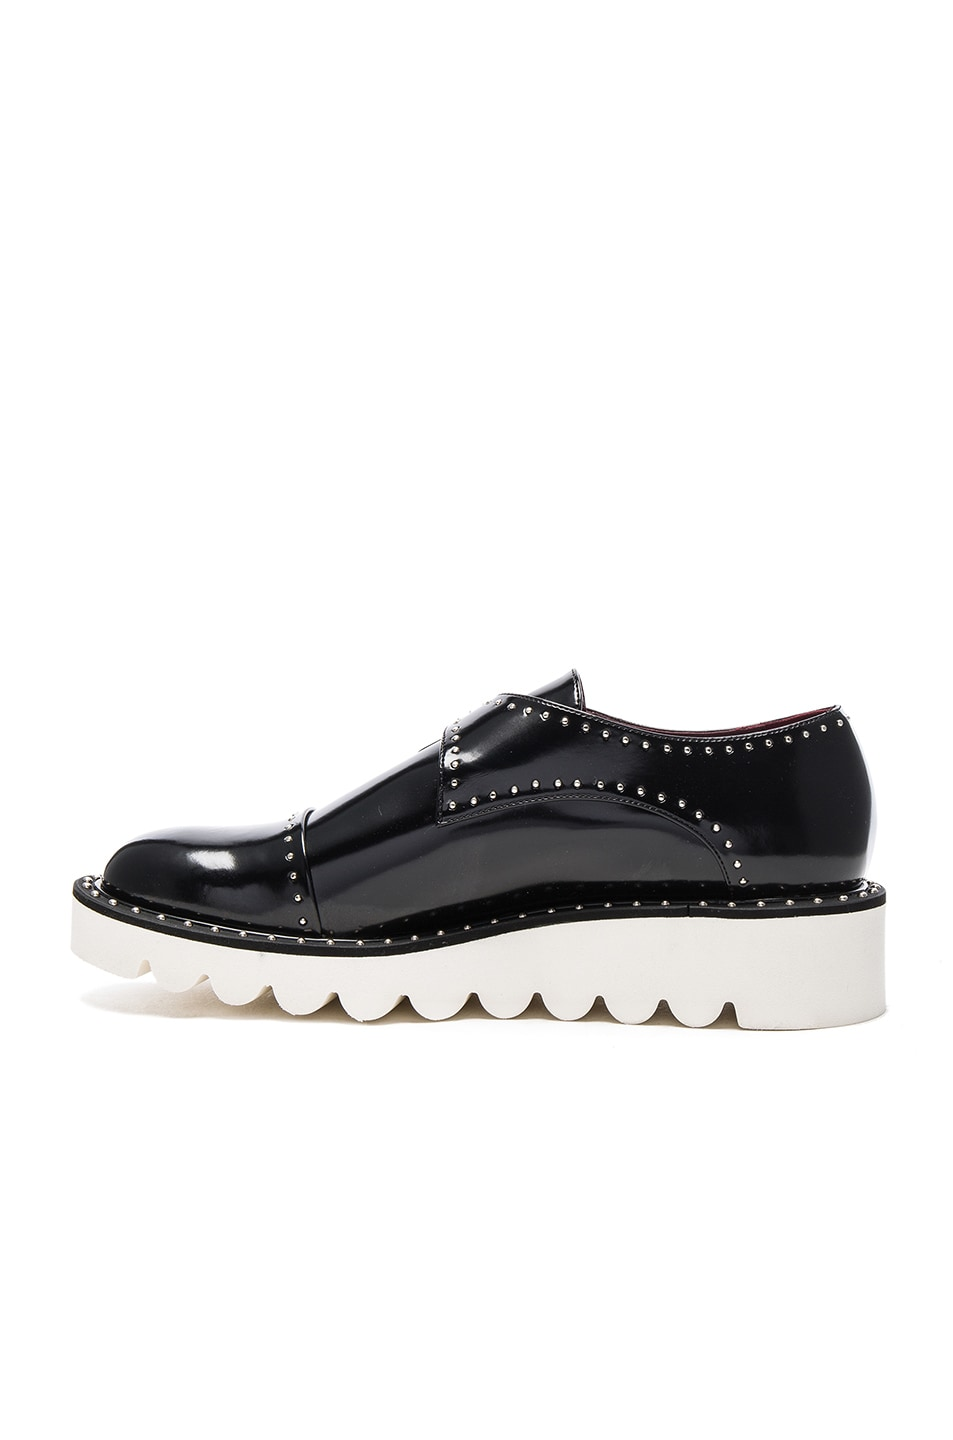 b371aed37e3d4 Image 5 of Stella McCartney Odette Shoes in Black